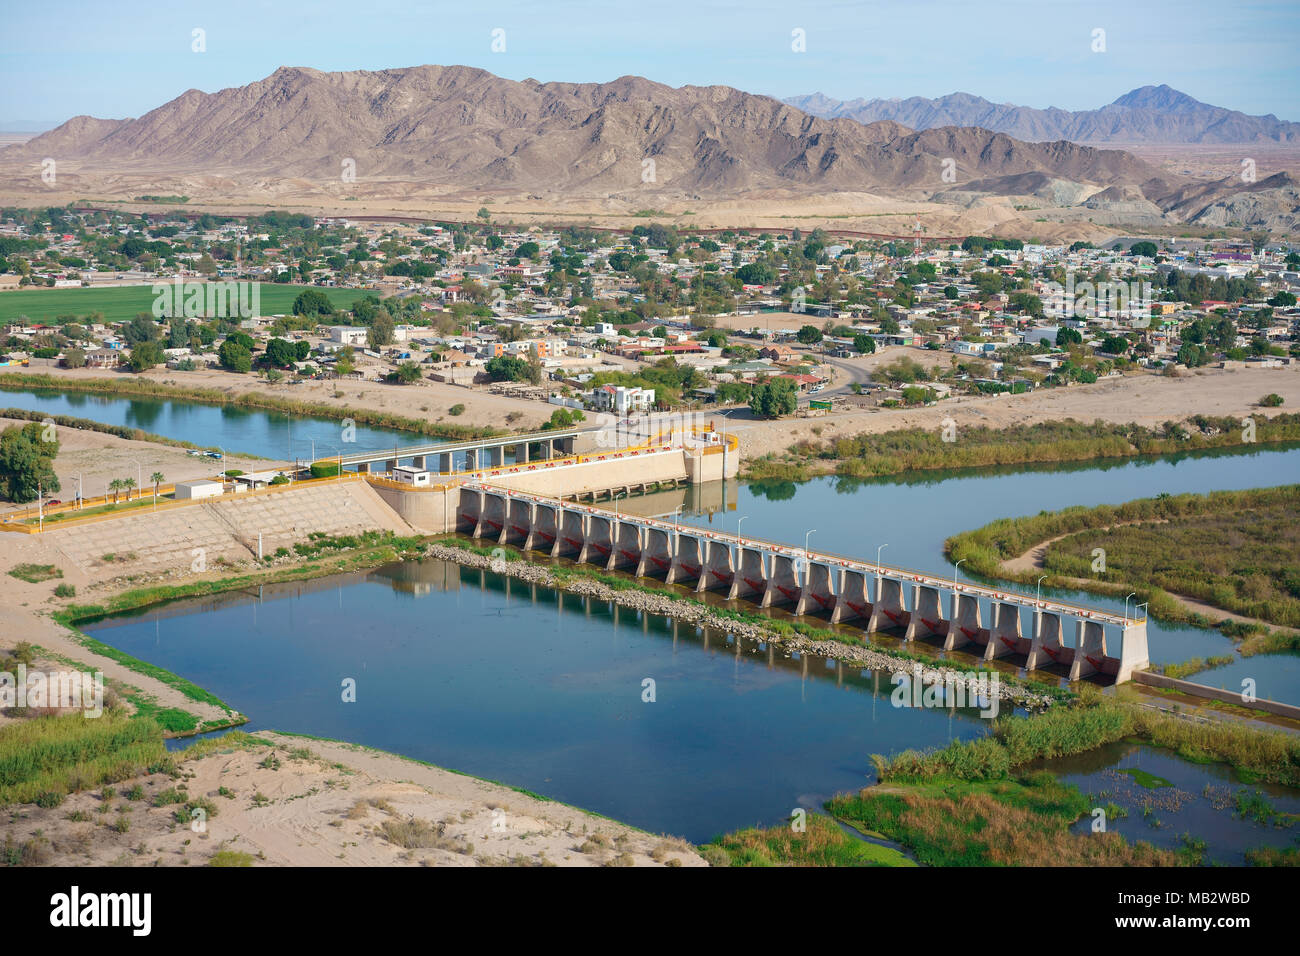 THE END OF THE COLORADO RIVER AT THE DIVERSION DAM OF MORELOS (aerial view). At the international border between Los Algodones in Mexico and the USA. - Stock Image